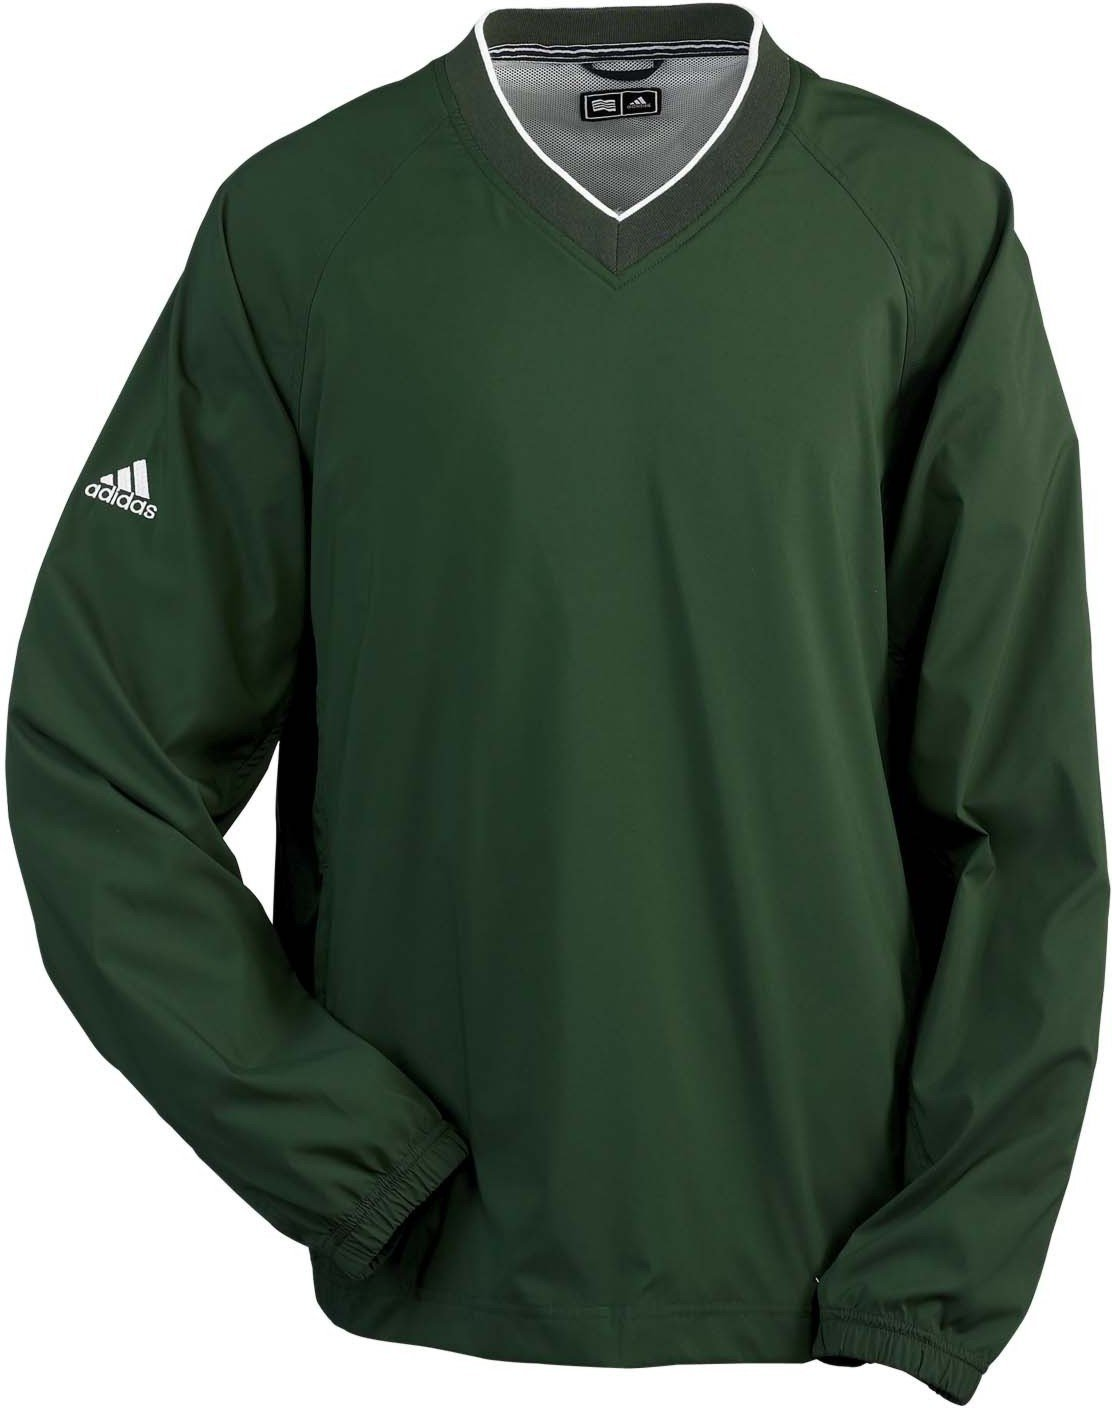 Mens Golf Windshirts